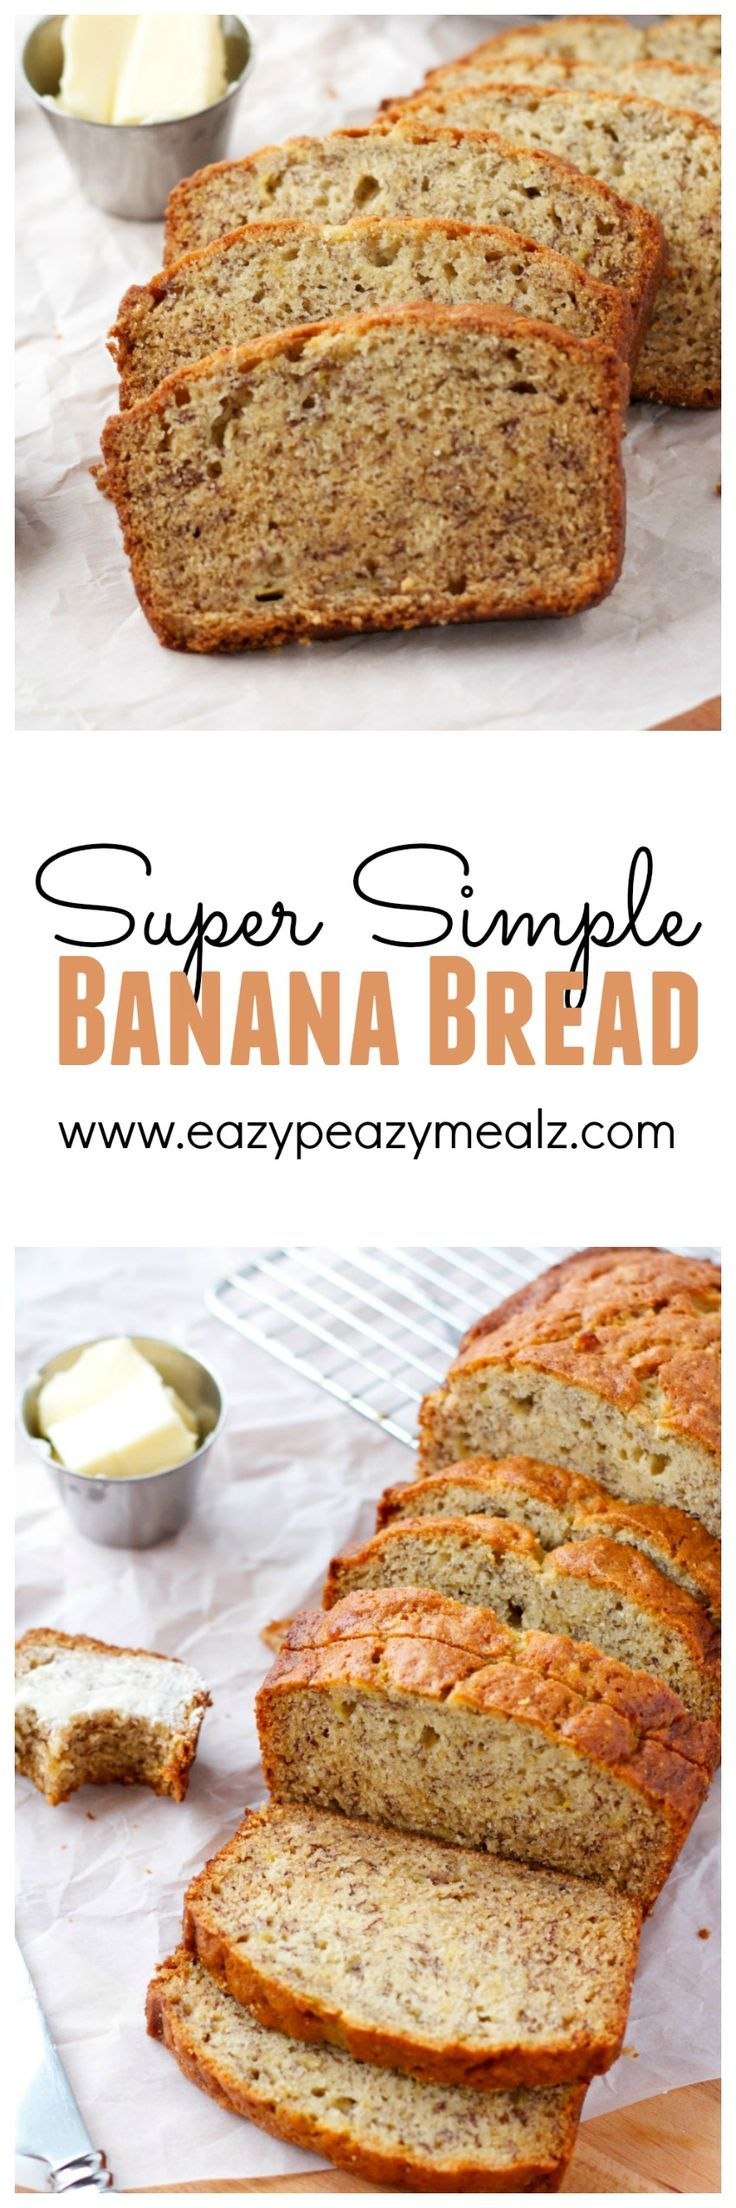 Best 25 banana bread cookies ideas on pinterest banana bread best 25 banana bread cookies ideas on pinterest banana bread recipe 3 bananas banana bread cake and banana oatmeal cookies forumfinder Image collections